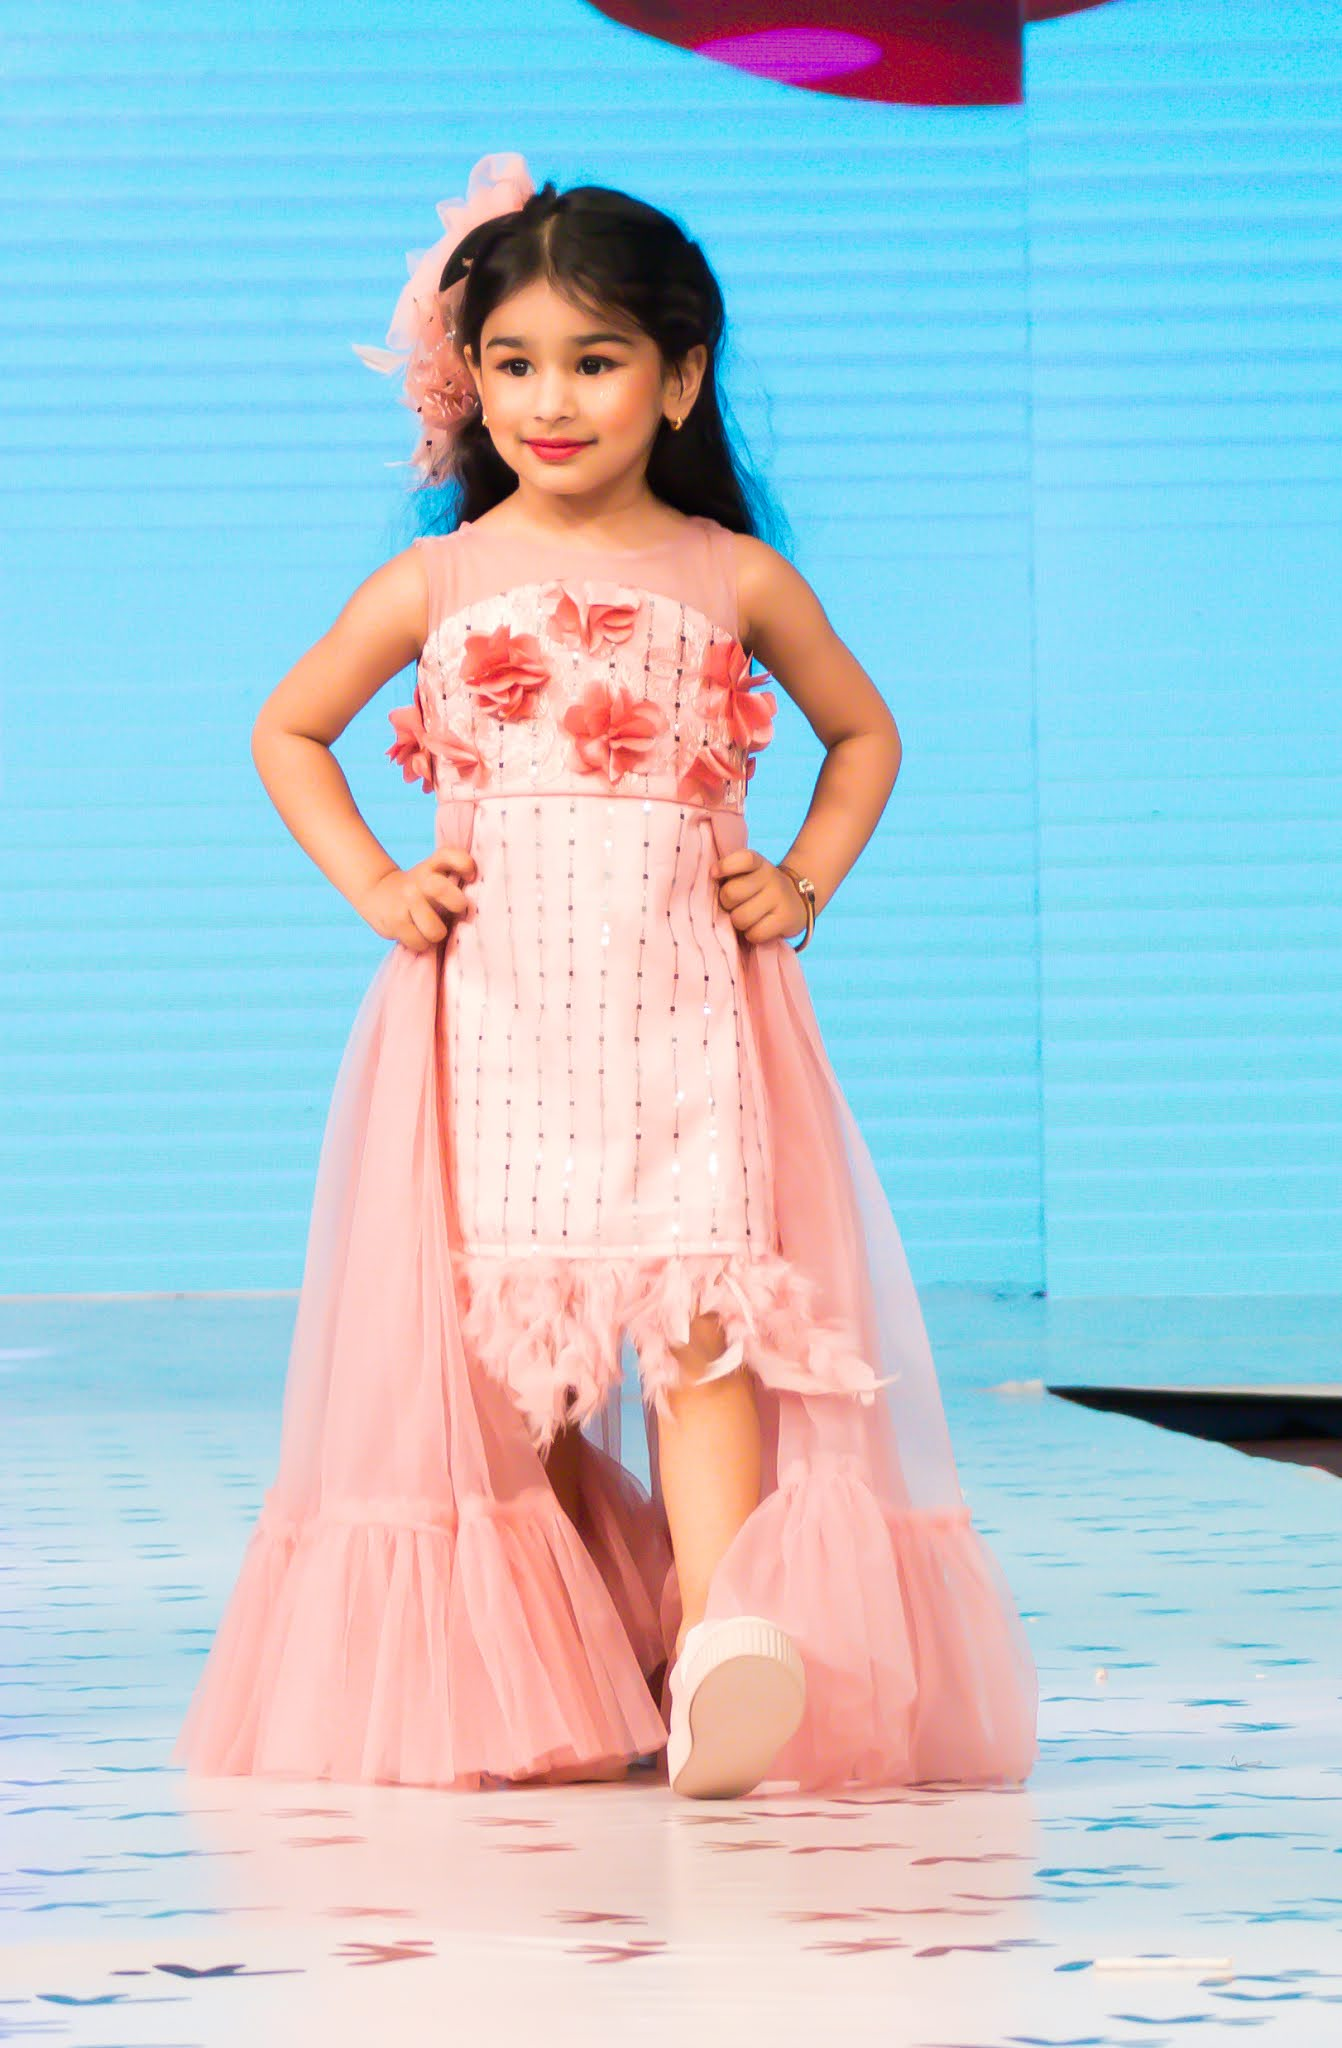 https://www.thecinemablogs.com/2020/11/Child-artist-heer-verma-elected-as-the-brand-ambassador-of-indias-little-fashion-hunters.html